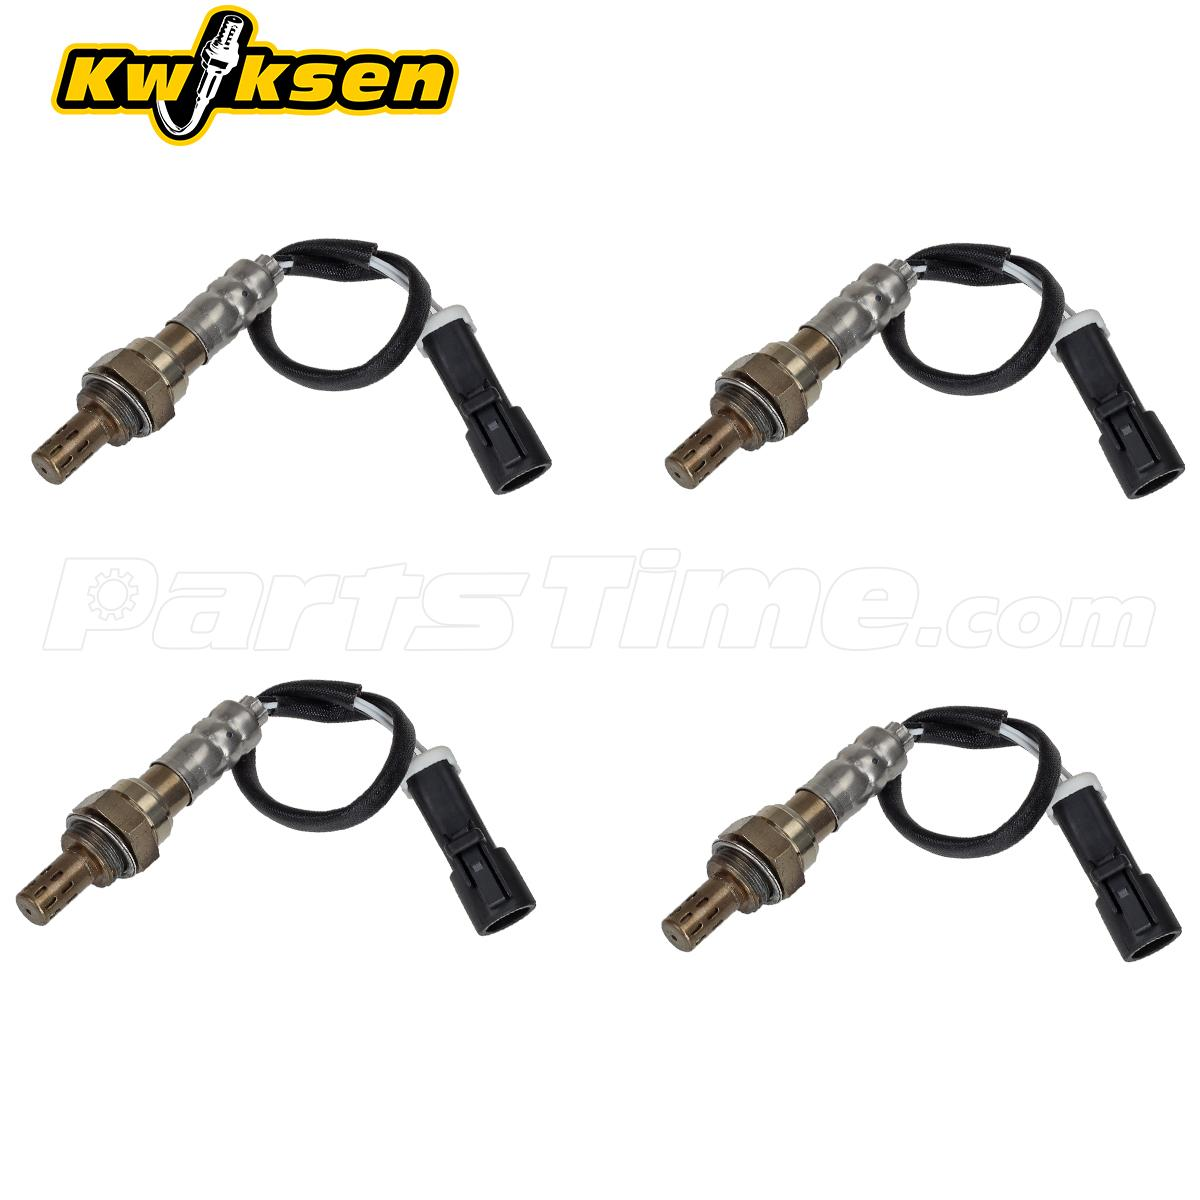 4x Oxygen Sensor 234-4071 Upper & Under For 1995-1998 Ford